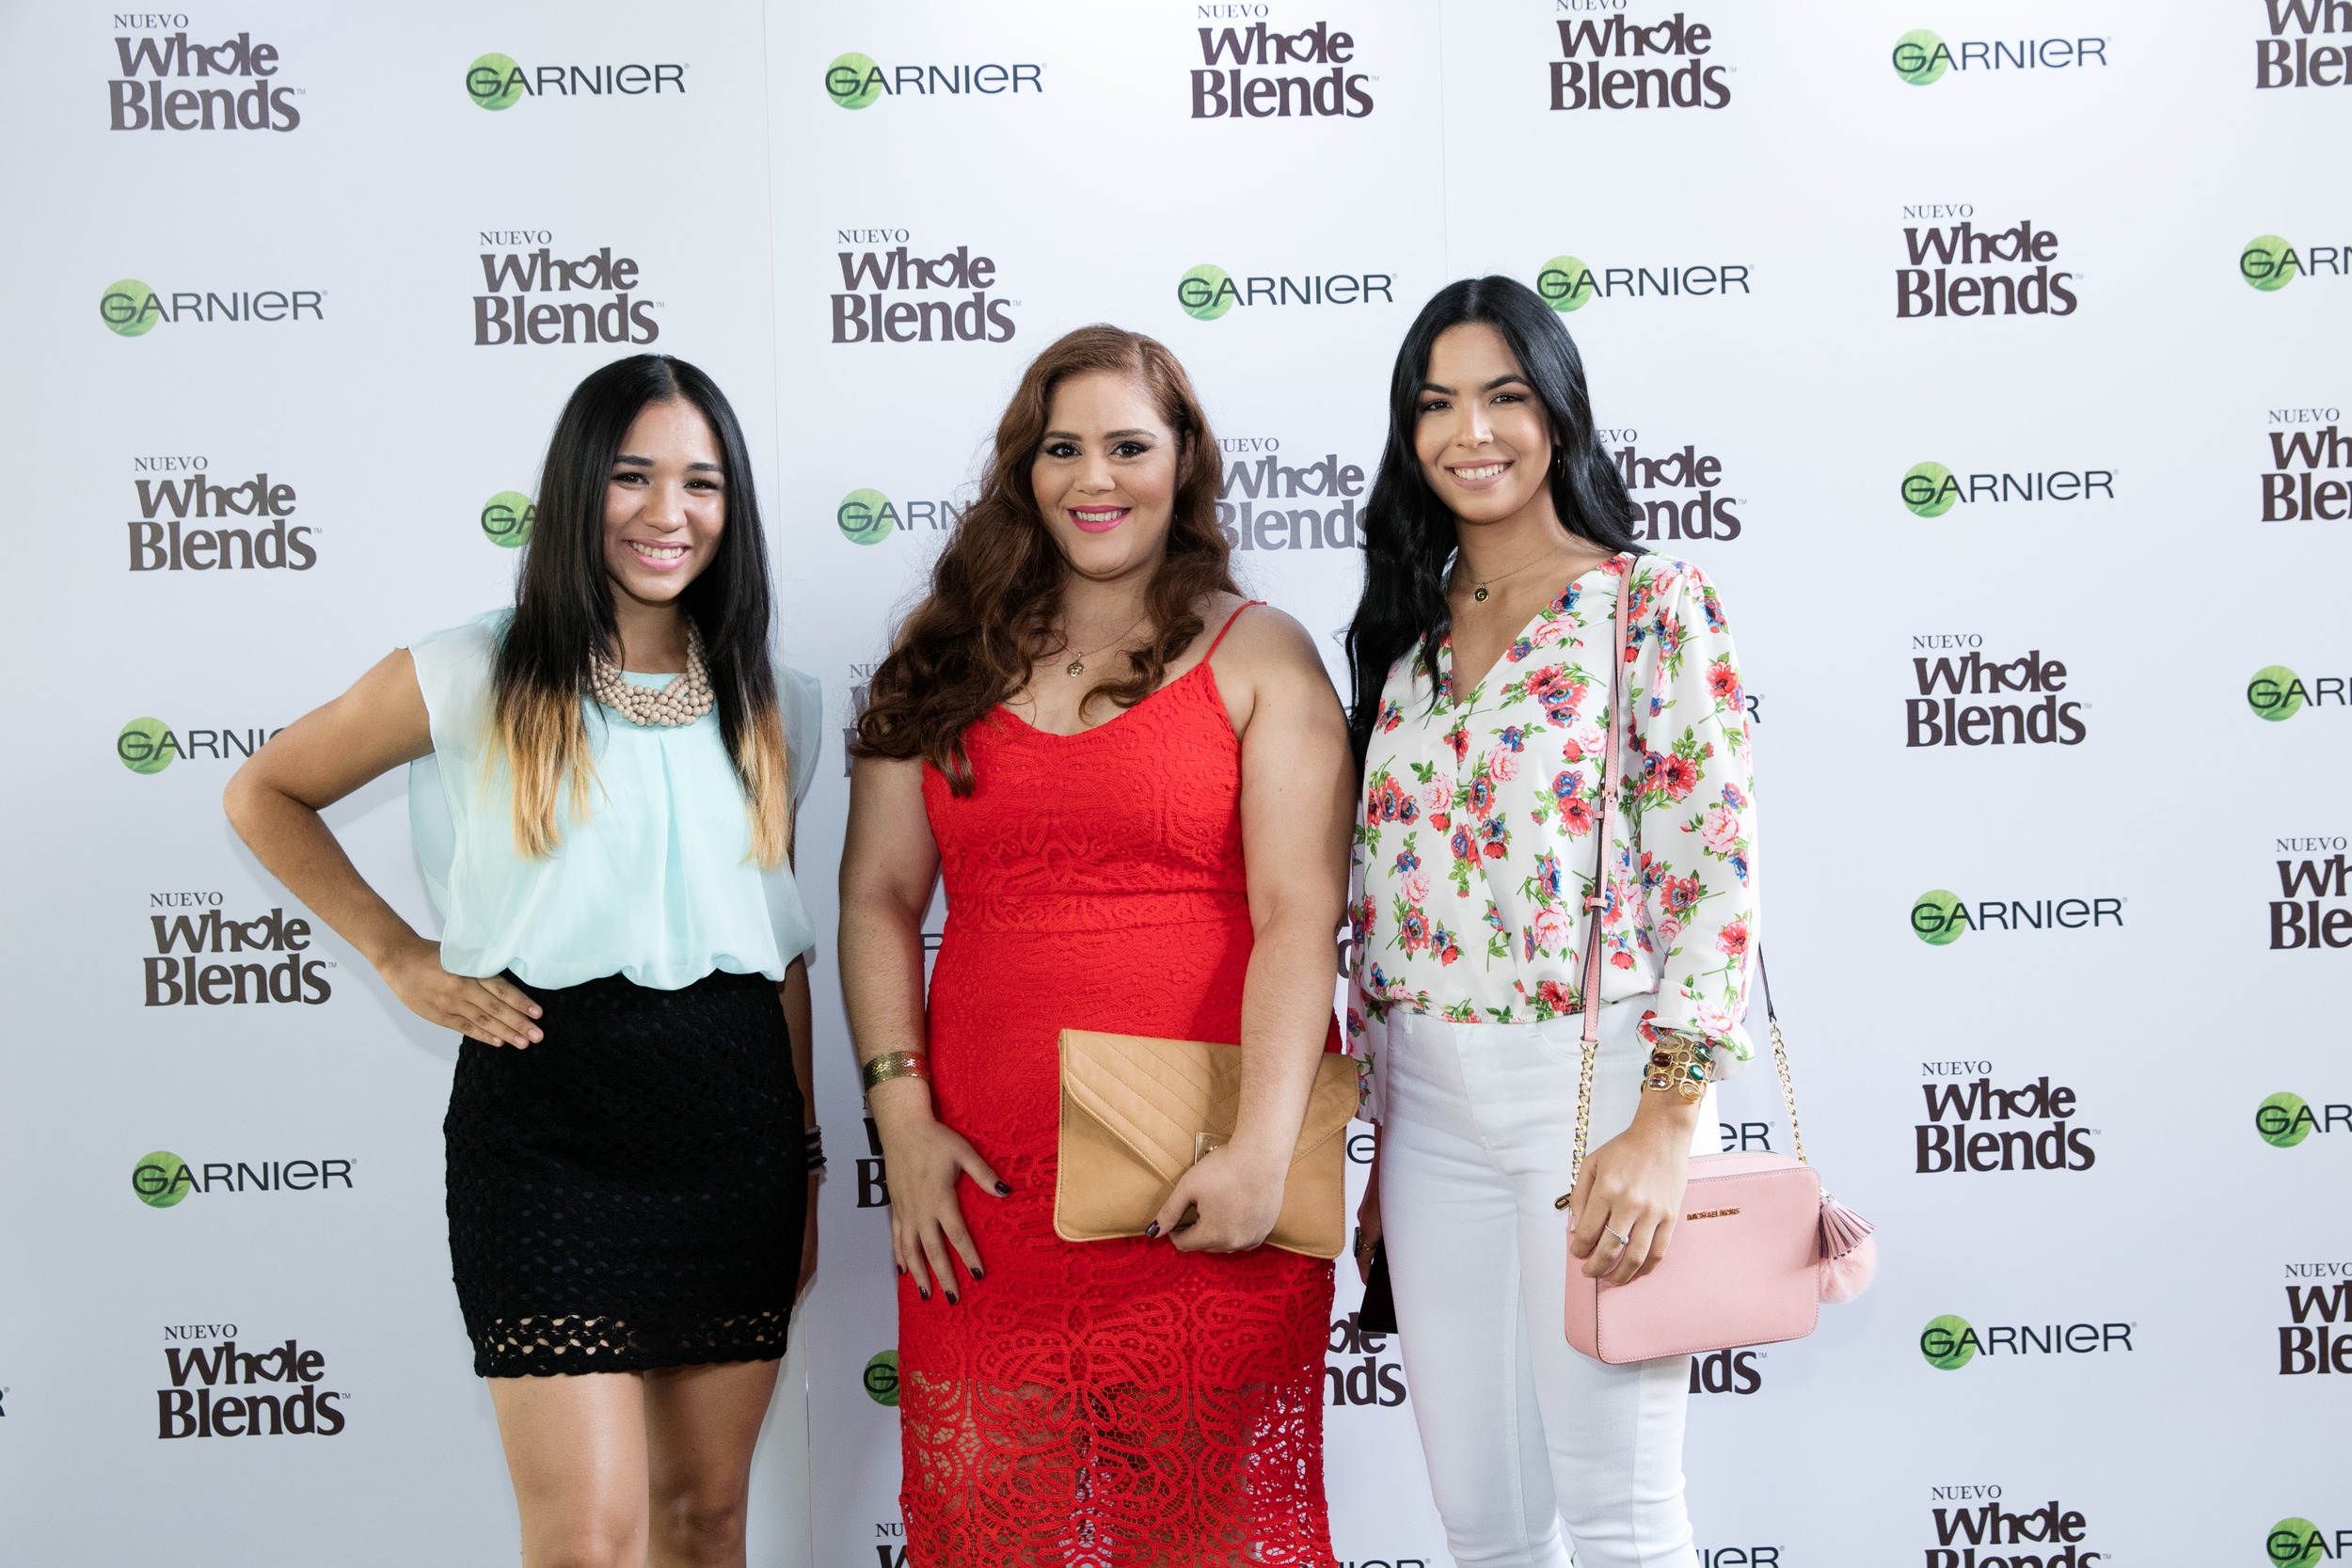 With the beautiful ladies of Salud Para Ti Magazine - Esther (left) and Unlimited Dreamer - Genesis (right).